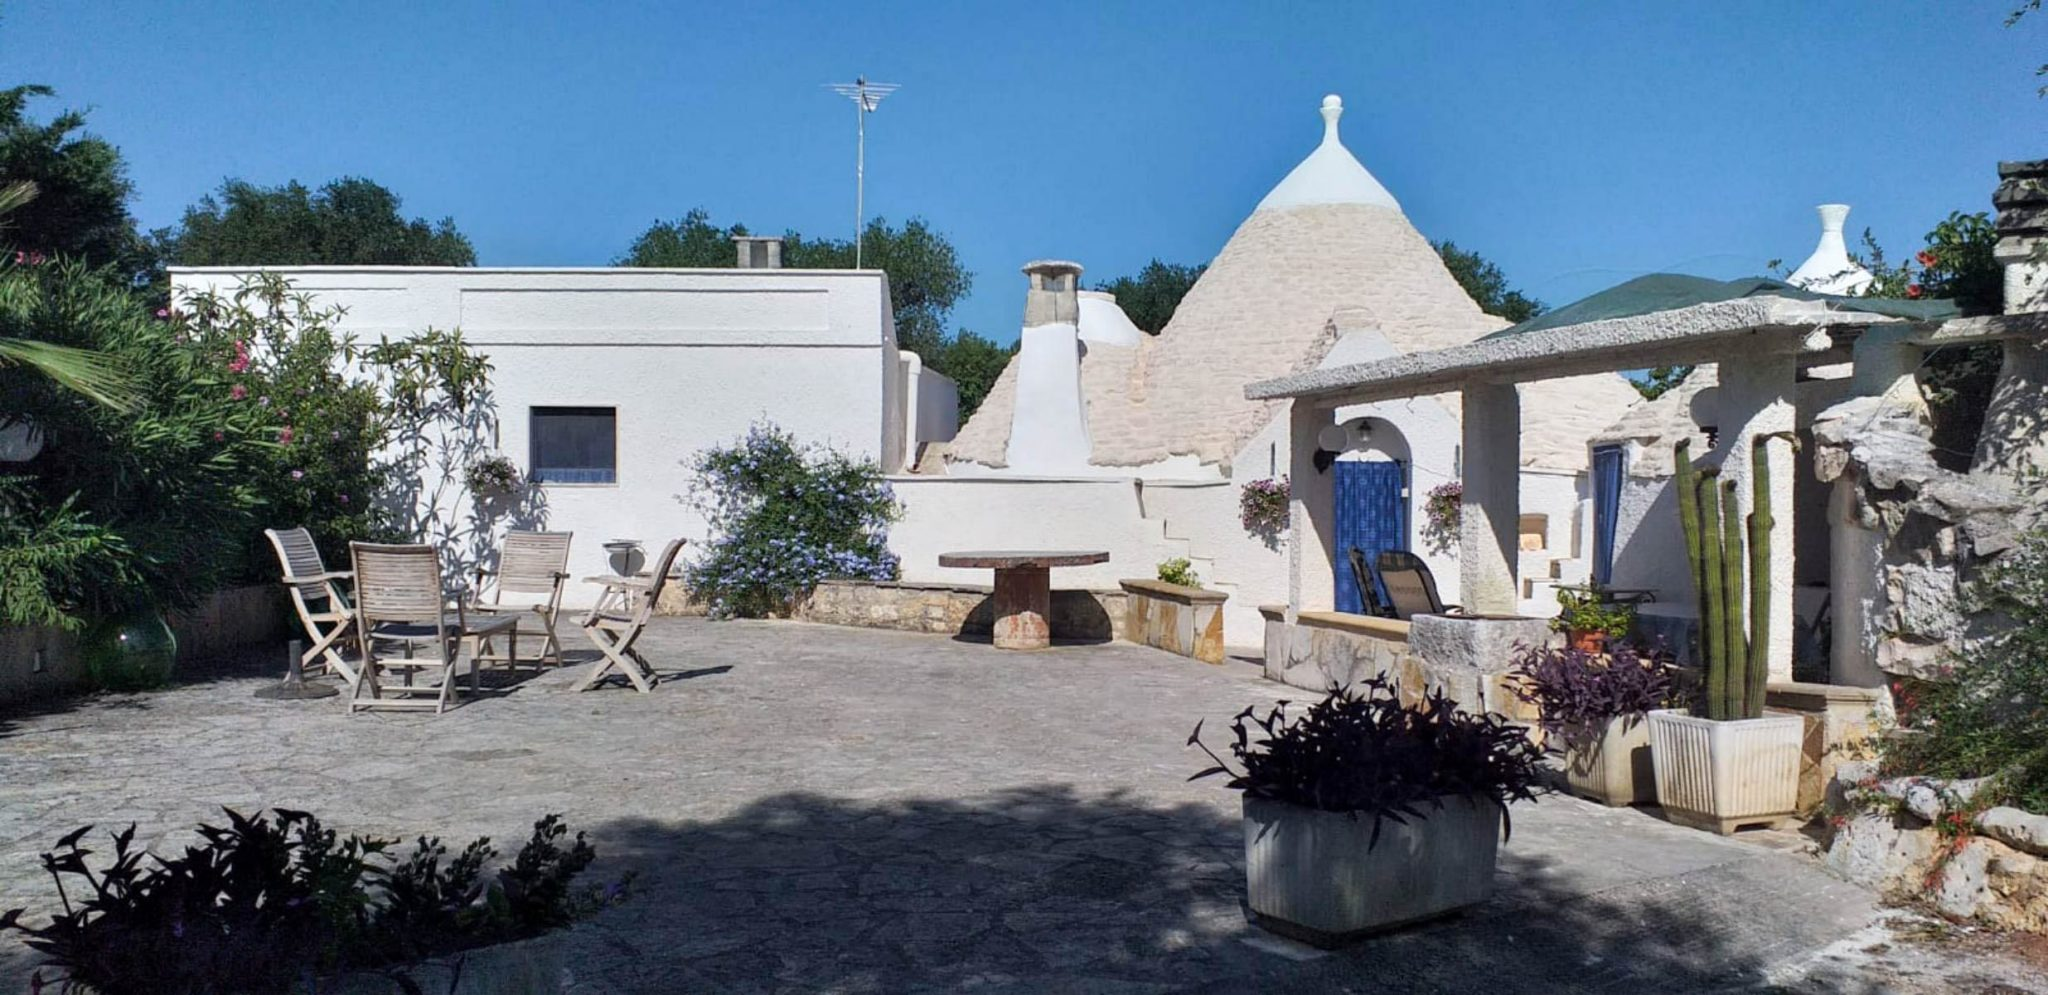 Habitable trulli for sale – Contrada Ulmo, Ceglie Messapica (Brindisi)